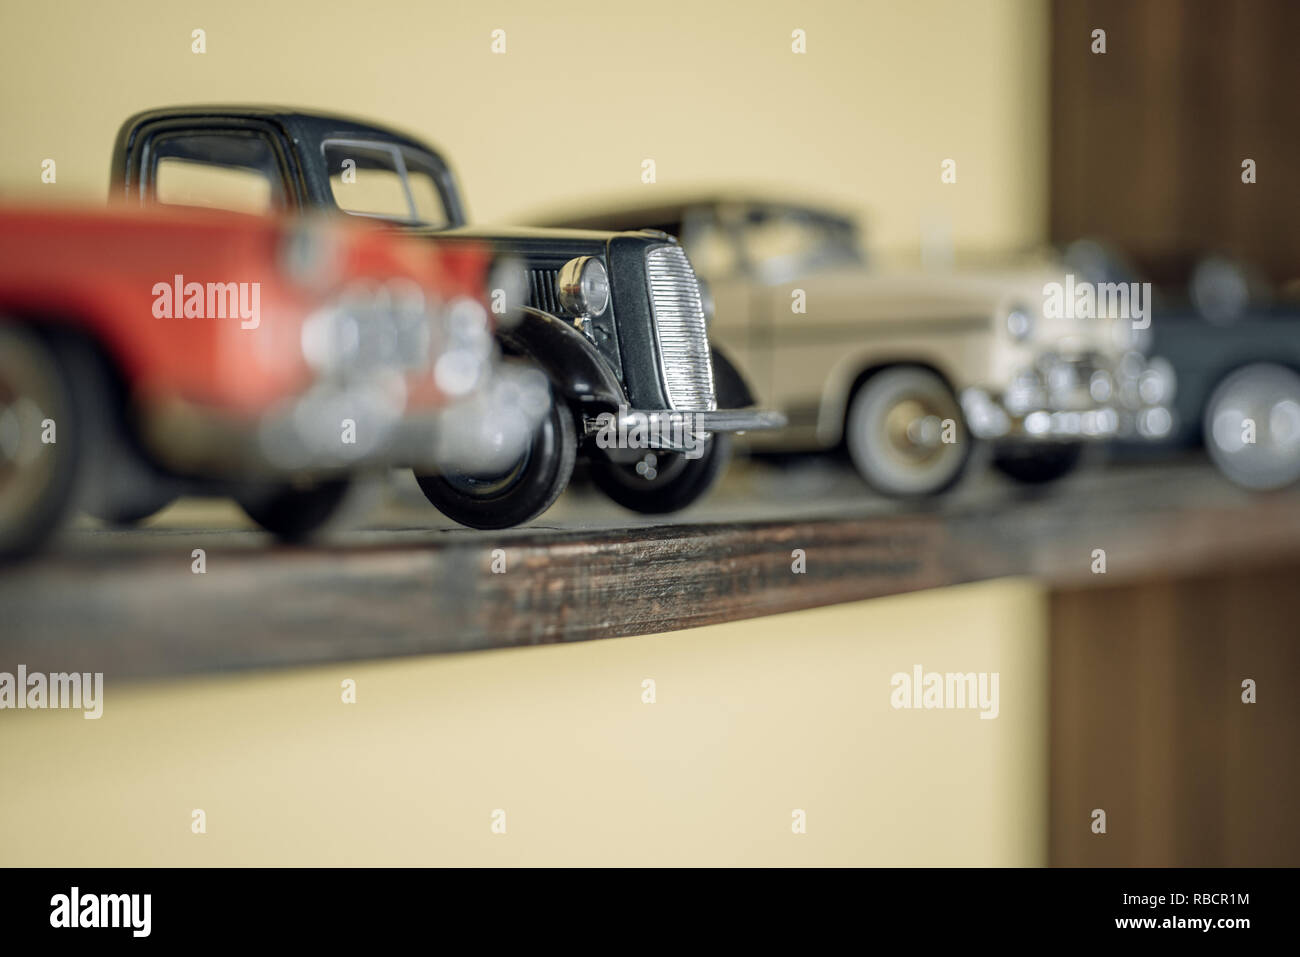 Vintage inspired. Retro car models on shelf. Retro styled cars. Toy cars with retro design. Classic model vehicles or toy vehicles. Miniature collection of automobiles - Stock Image